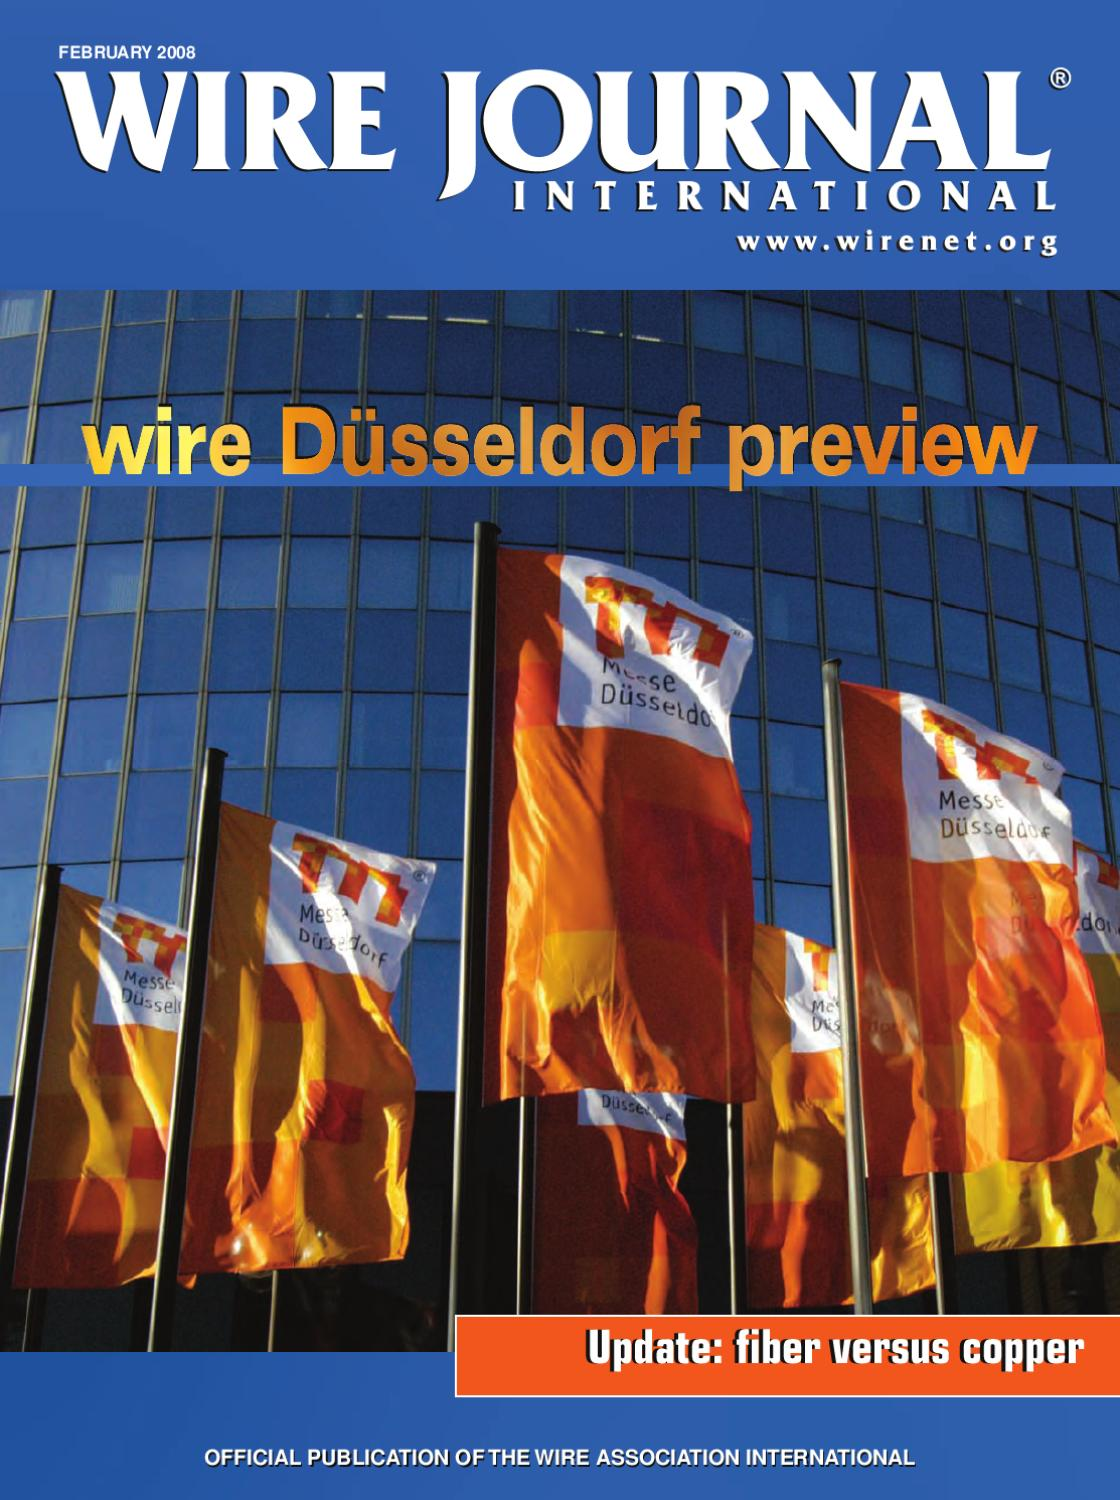 Düsseldorf Fundbüro Wire Dusseldorf Preview By Wire Journal International Inc Issuu